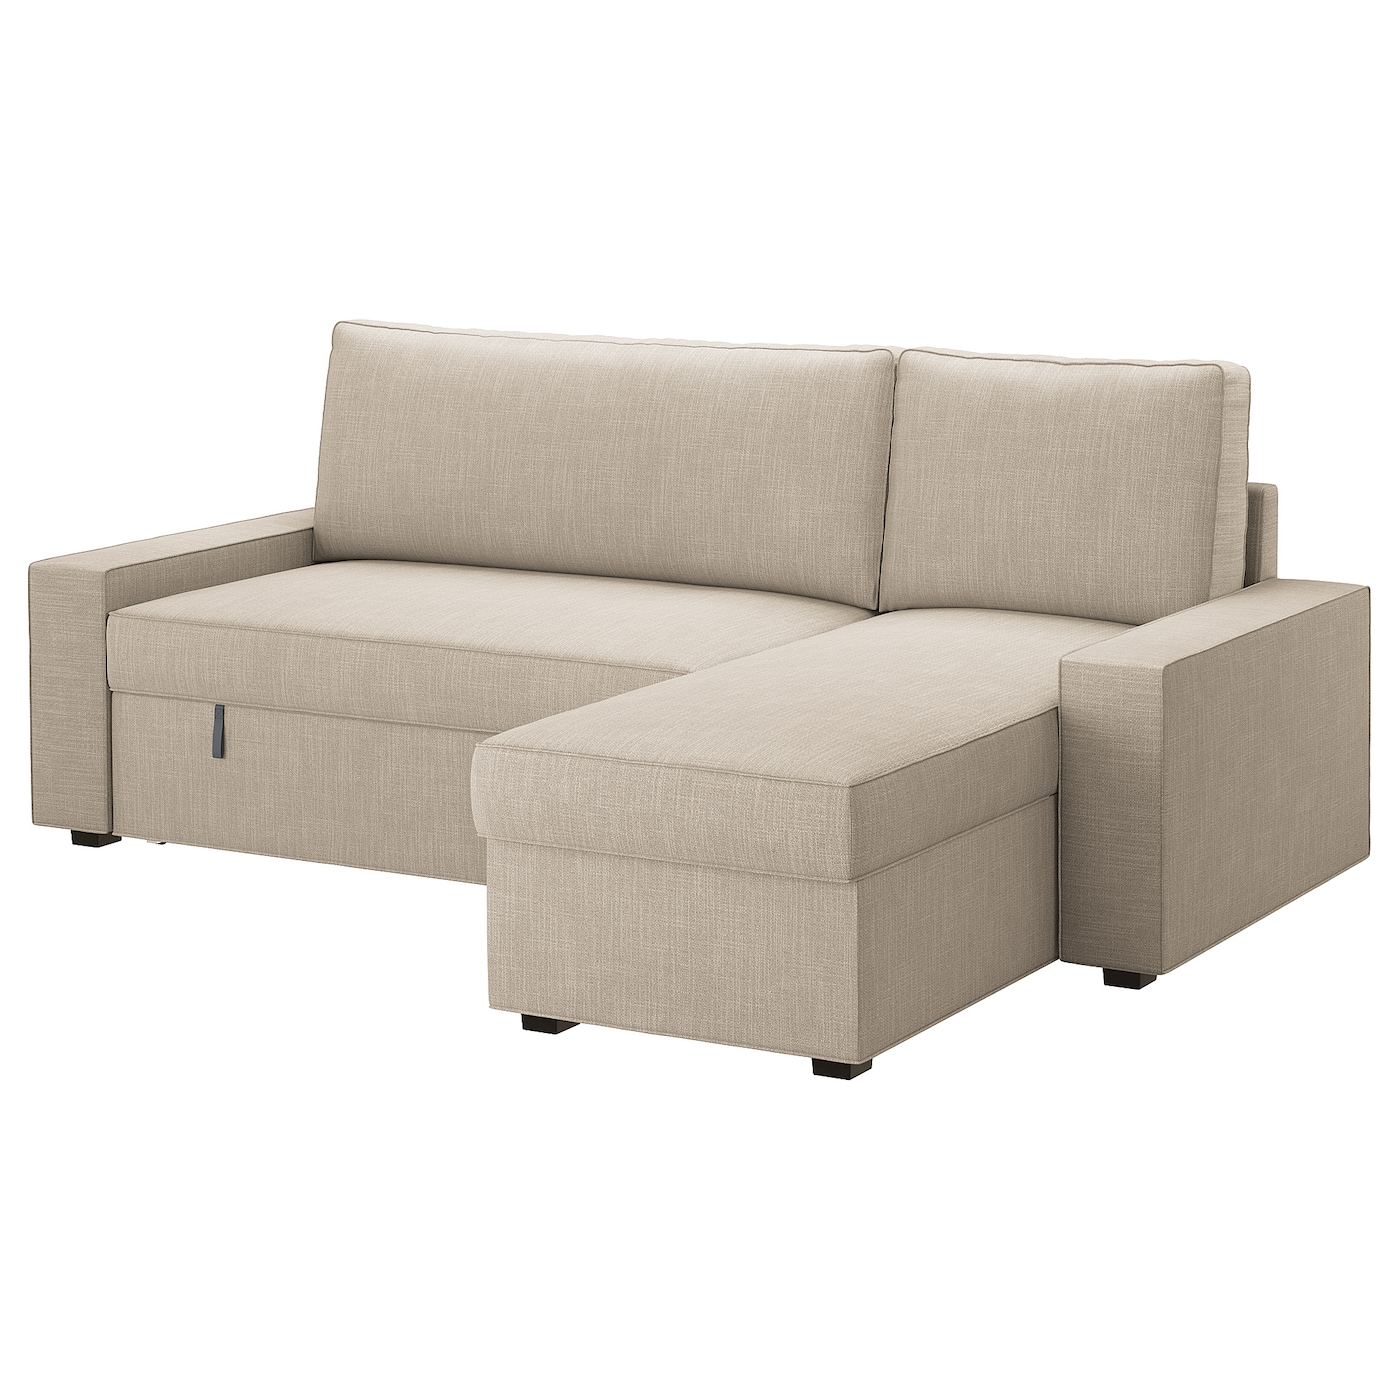 Vilasund sofa bed with chaise longue hillared beige ikea for Chaise sofa bed